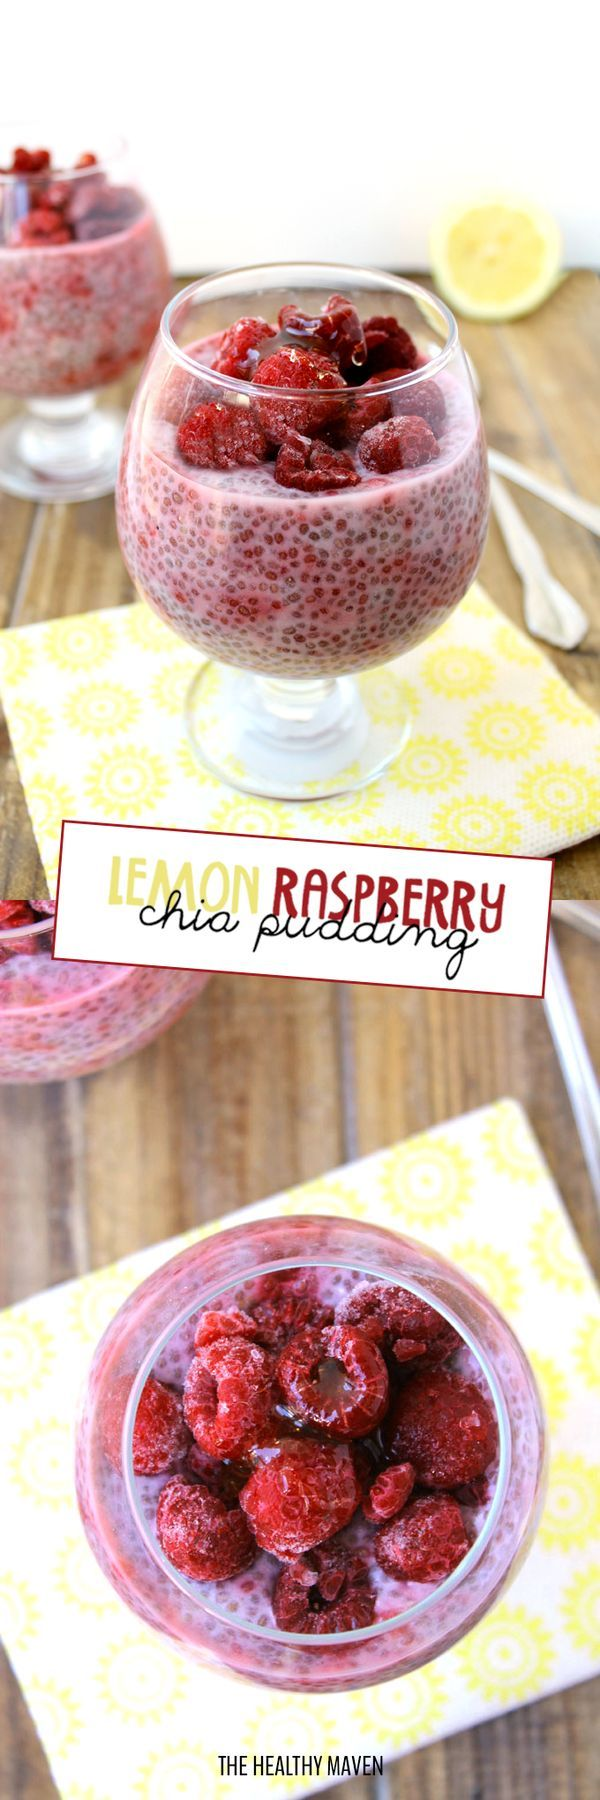 This Lemon Raspberry Chia Pudding makes a refreshing and healthy snack recipe made with fresh or frozen berries and sweetened with just a touch of honey! It also is a great dessert for one or for guests!